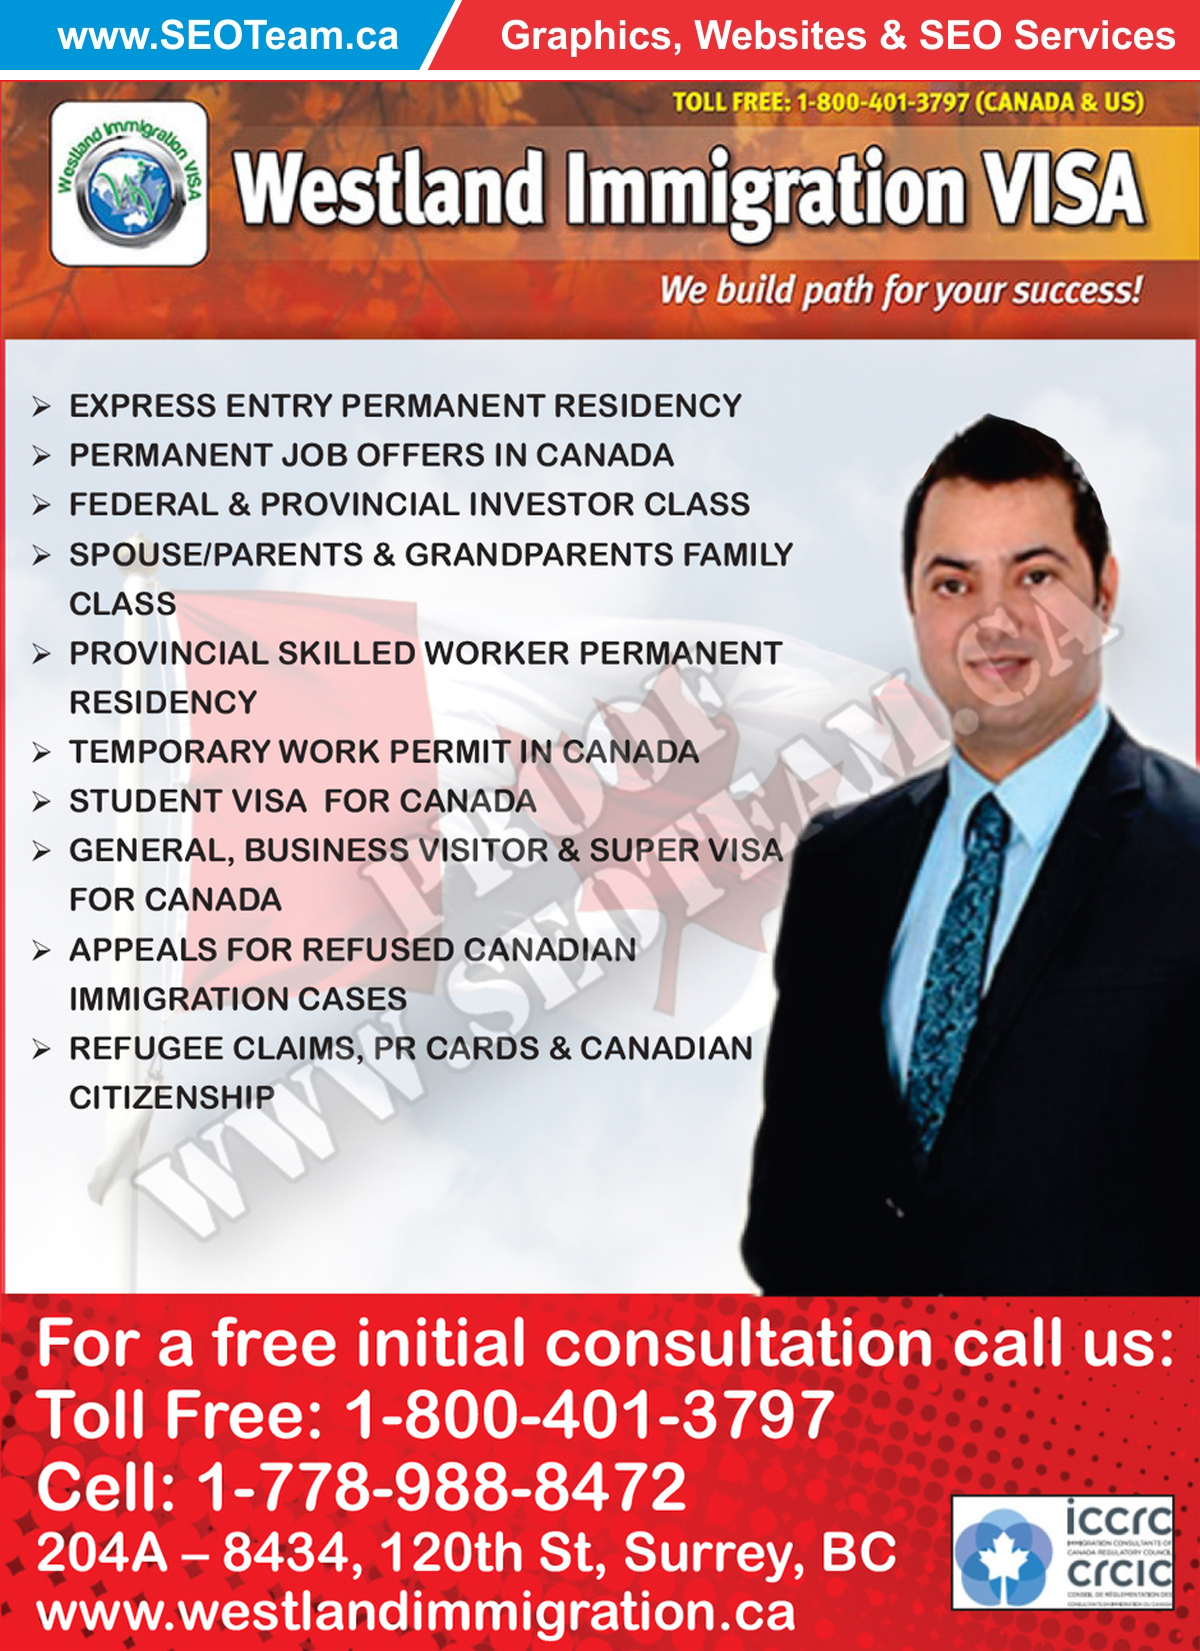 Westland Immigration - Design By SEOTeam.ca